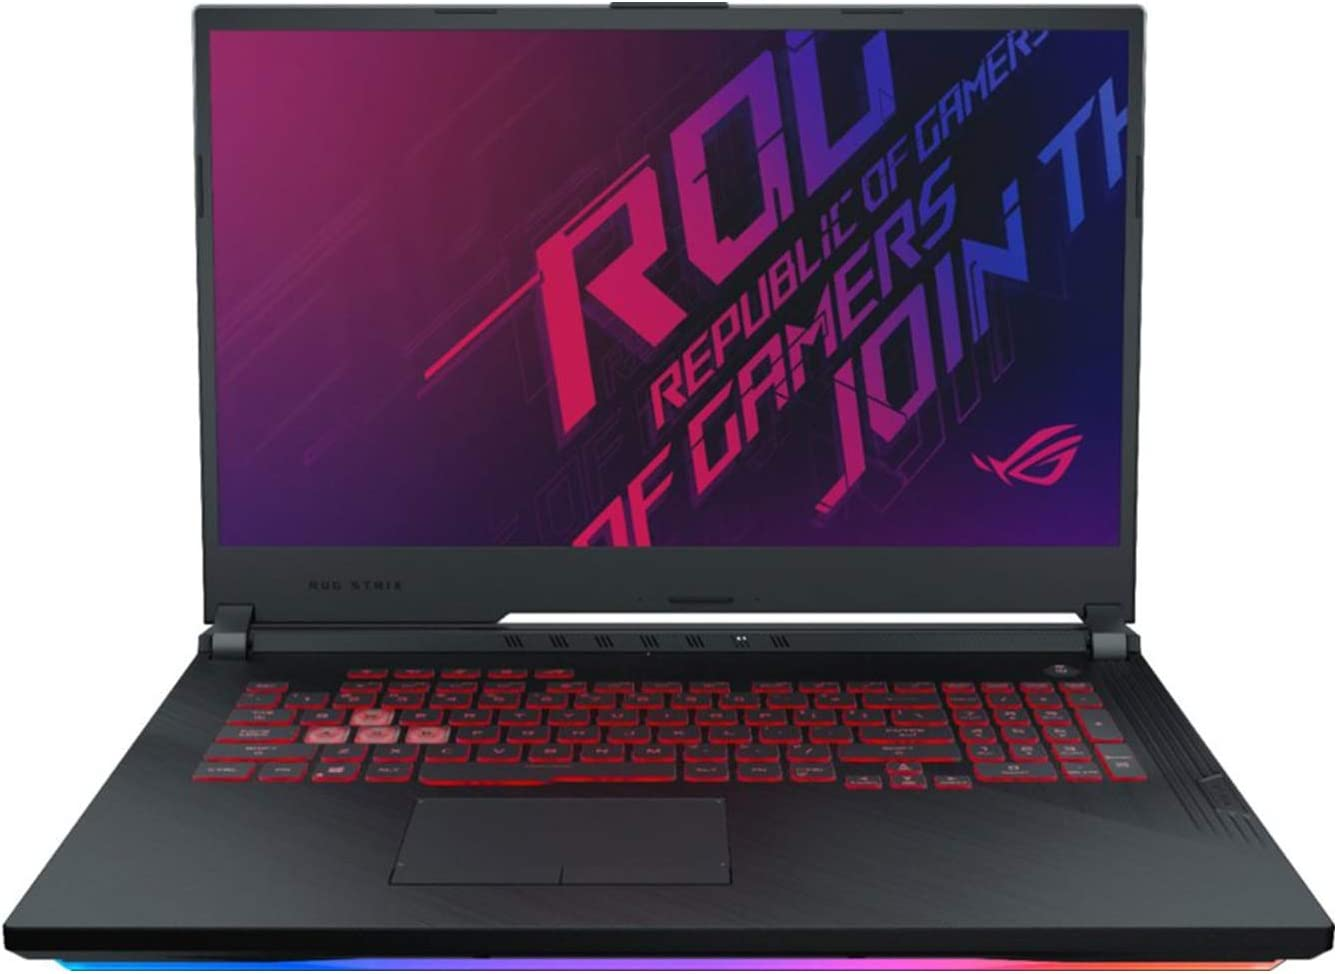 "ASUS ROG 17.3"" FHD Gaming Laptop Core i7-9750H 32GB RAM 1TB SSD, GTX 1660 Ti 6GB, Hexa-Core up to 4.50 GHz, RGB Backlit Keyboard, RJ-45 LAN, USB-C, 1920x1080, Wi-Fi, Bluetooth, Win 10"